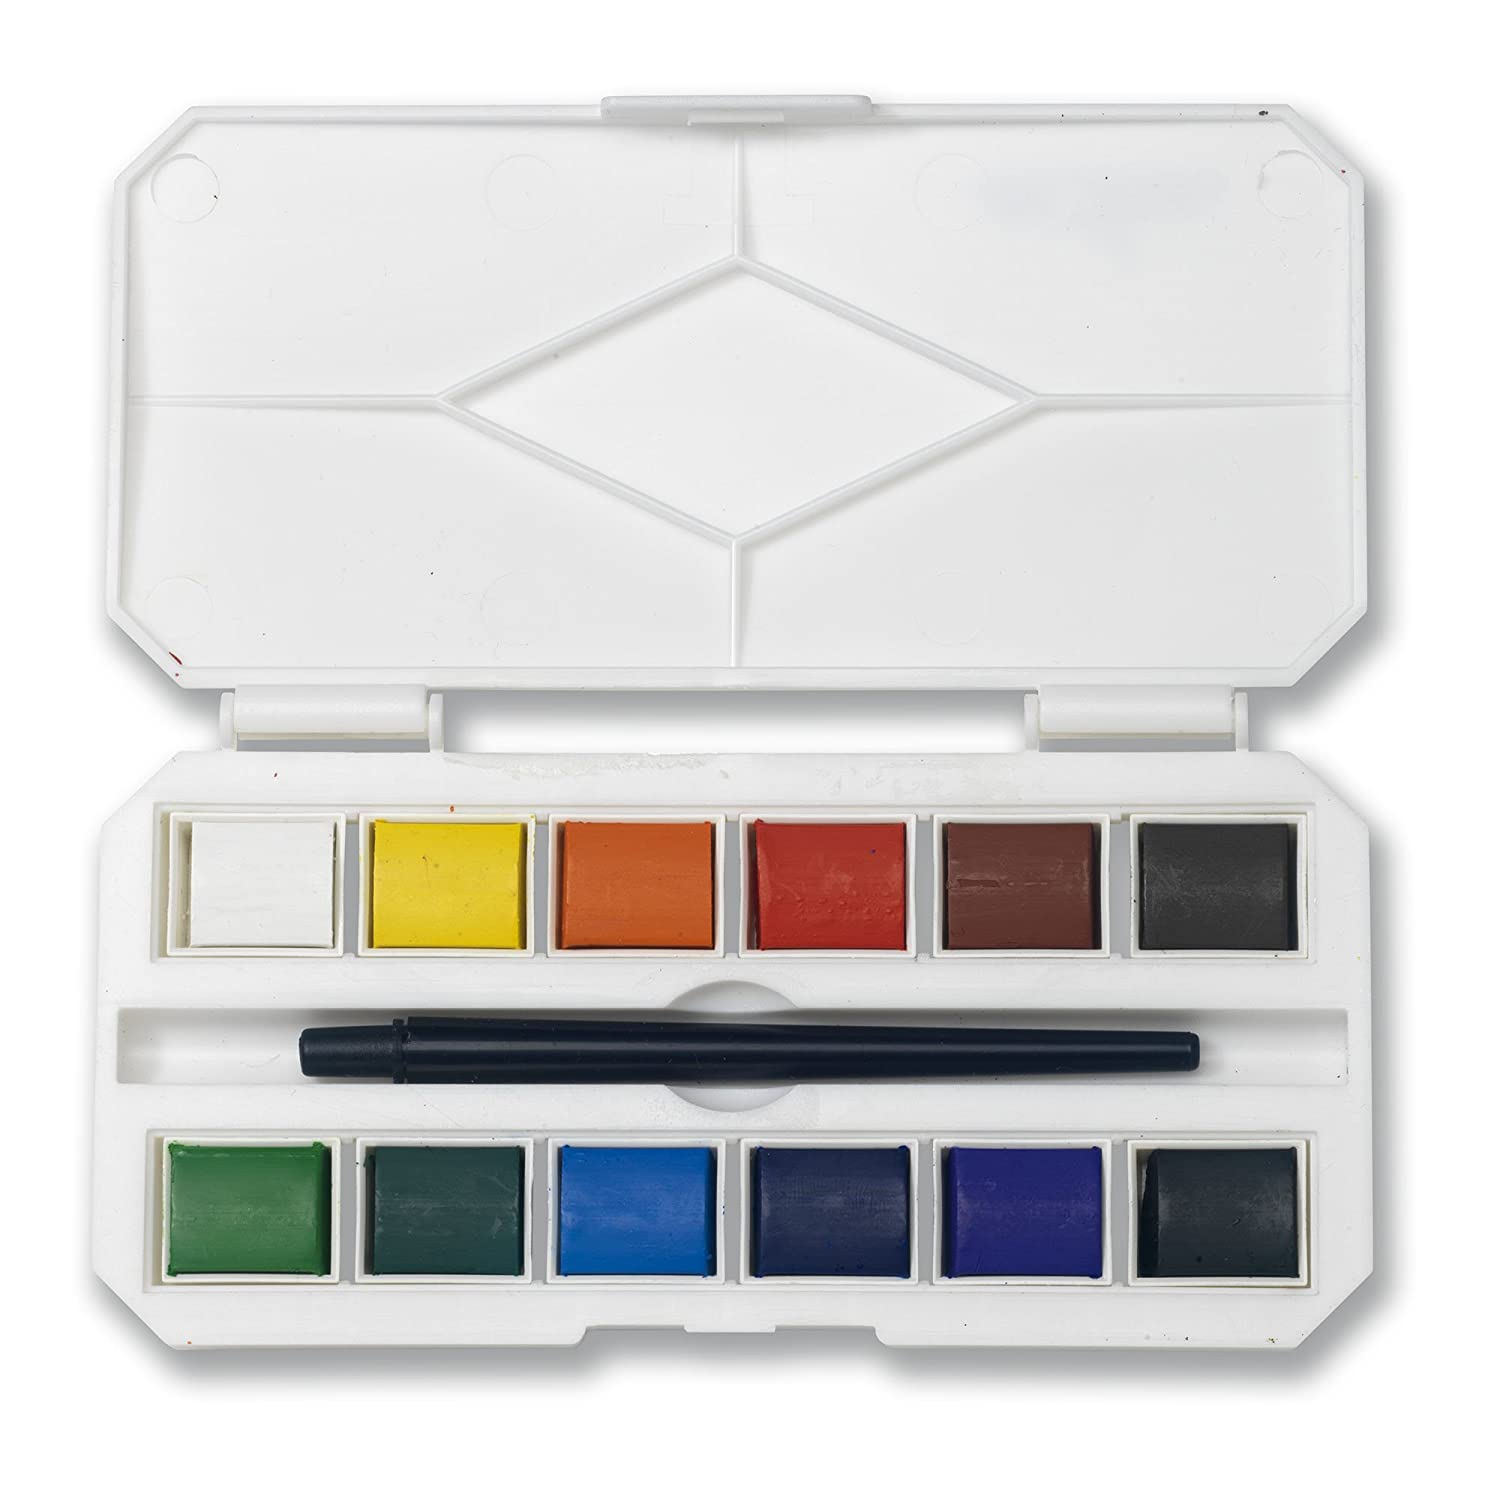 Jerry Q Art 12 Assorted Water Colors Travel Pocket Set- Free Paint Brush-Easy to Blend Colors-Half Pan Watercolors- Perfect for Painting on the Go JQ-112